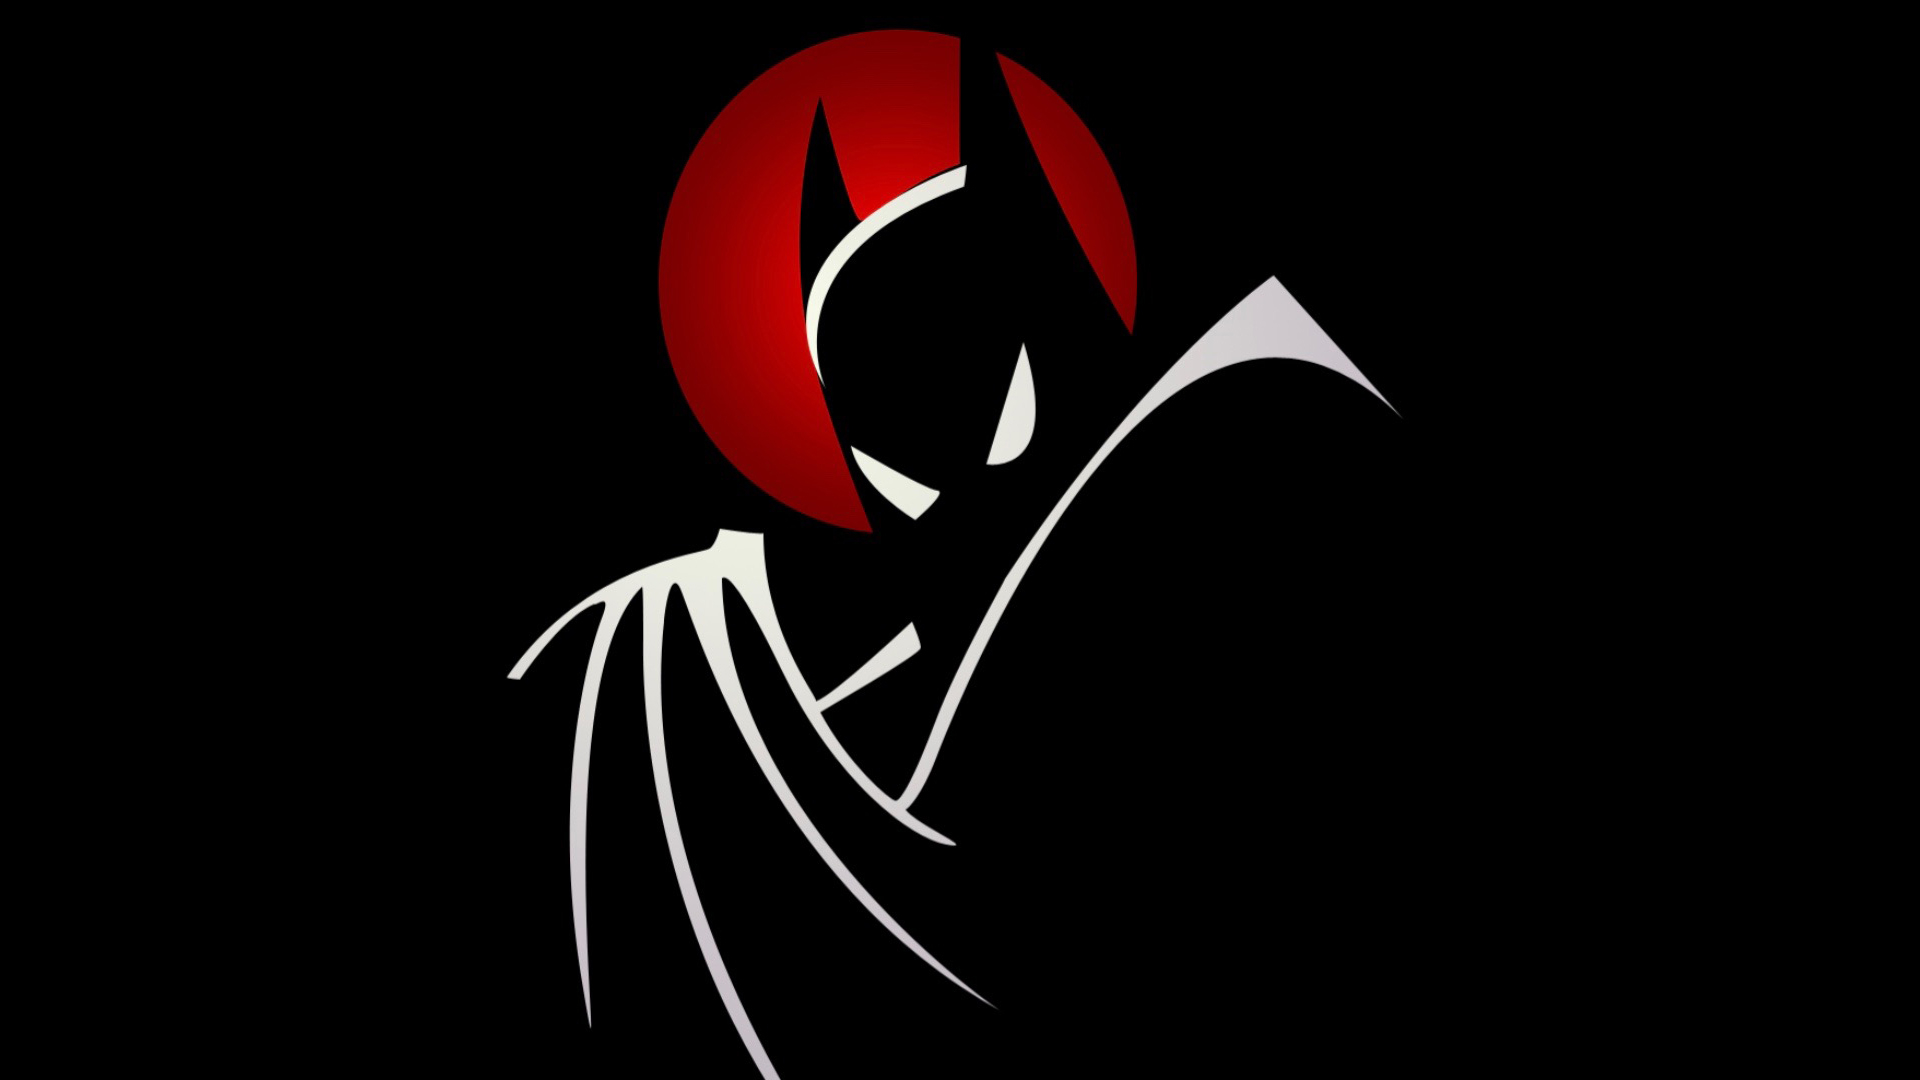 Batman Animated Series Wallpaper Hd Anime 4k Wallpapers Images Photos And Background